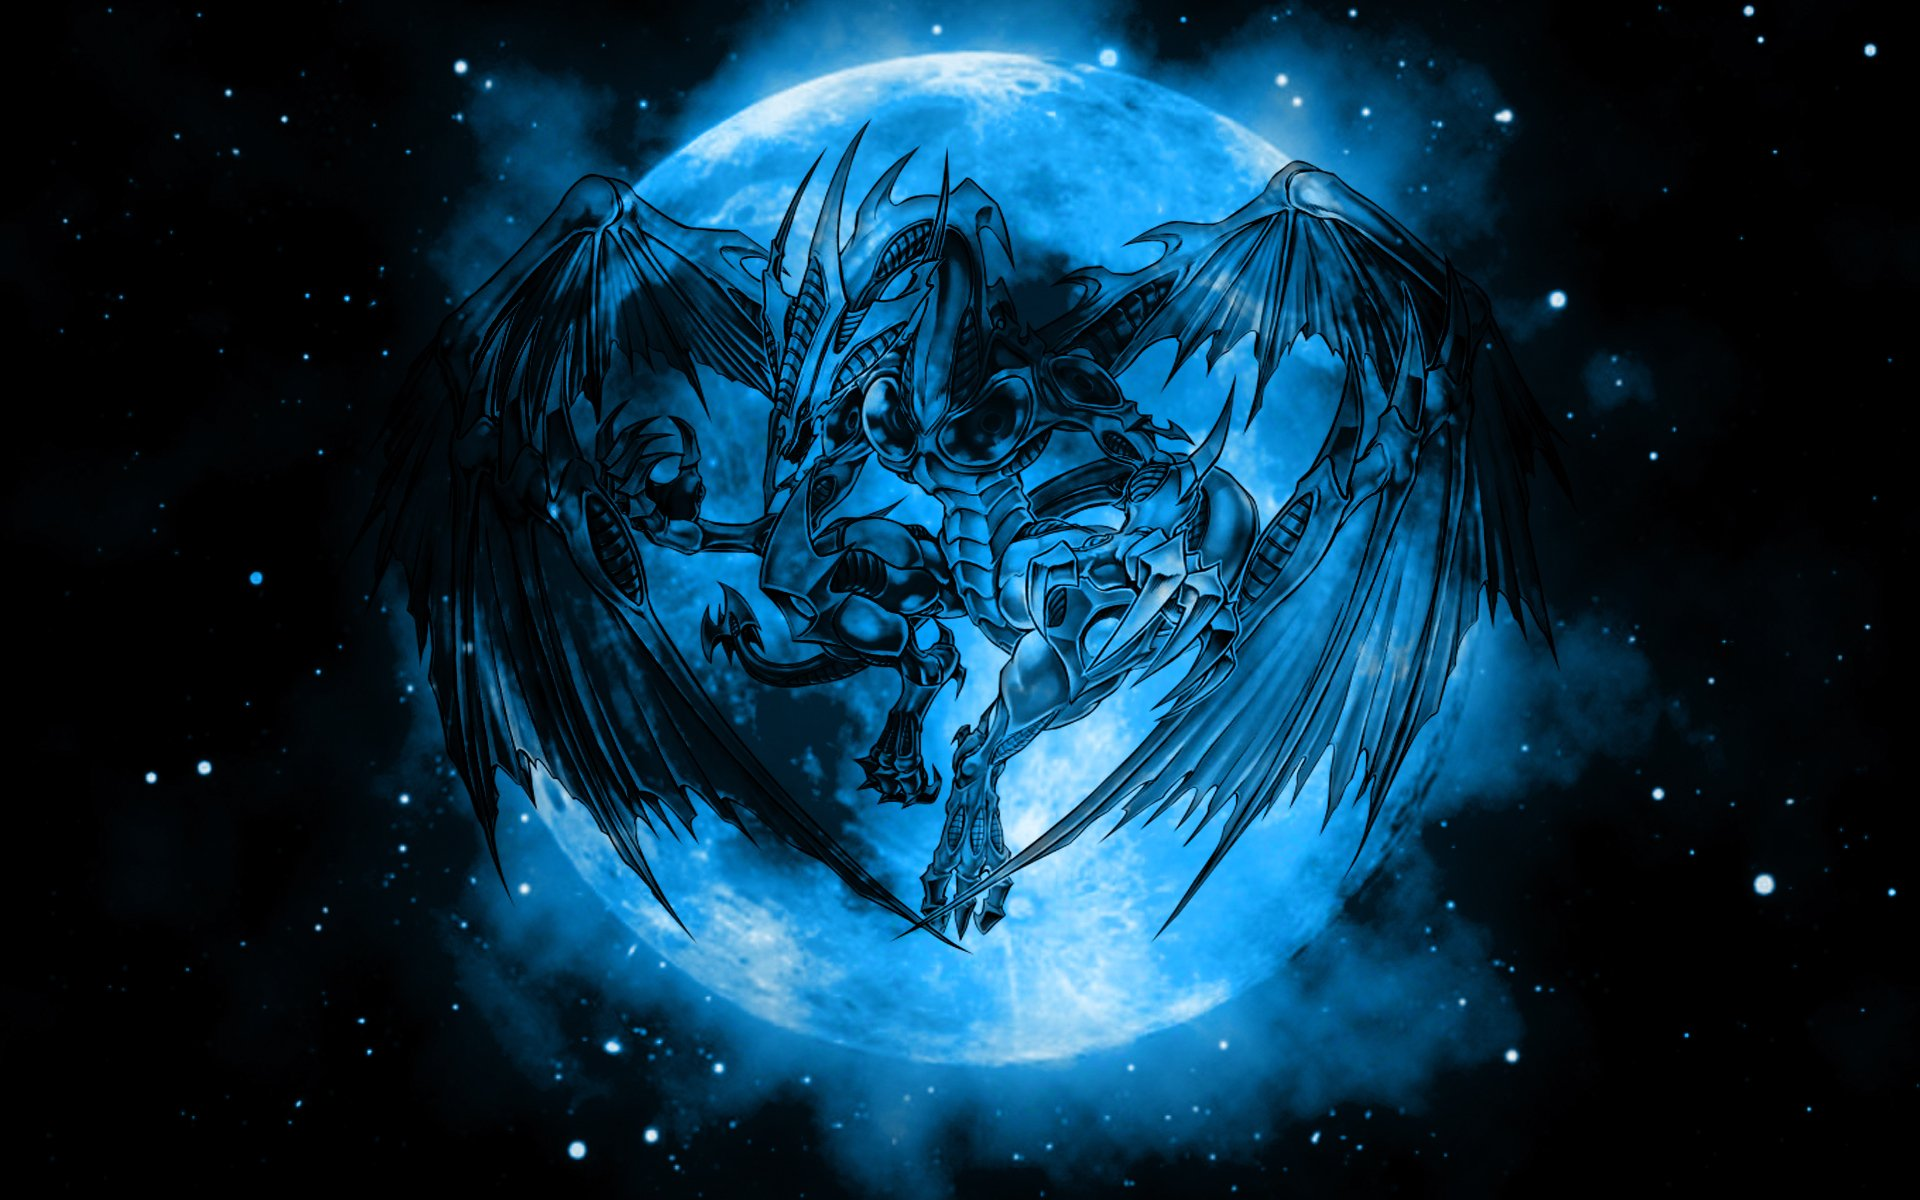 wallpapers dragones hd   Taringa 1920x1200